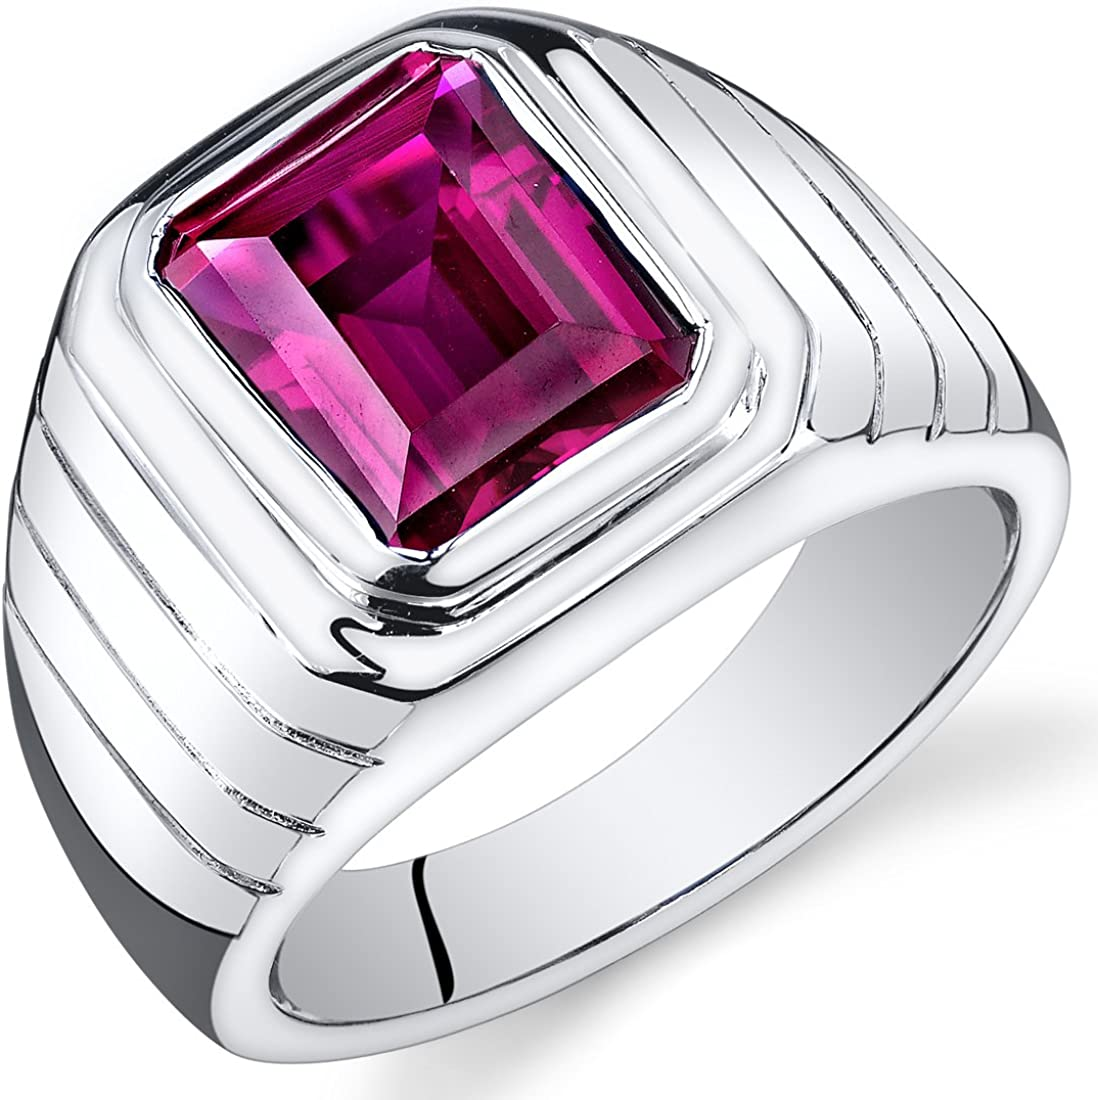 Mens 6.50 Carats Created Ruby Ring Sterling Silver Rhodium Nickel Finish Octagon Cut Sizes 8 to 13